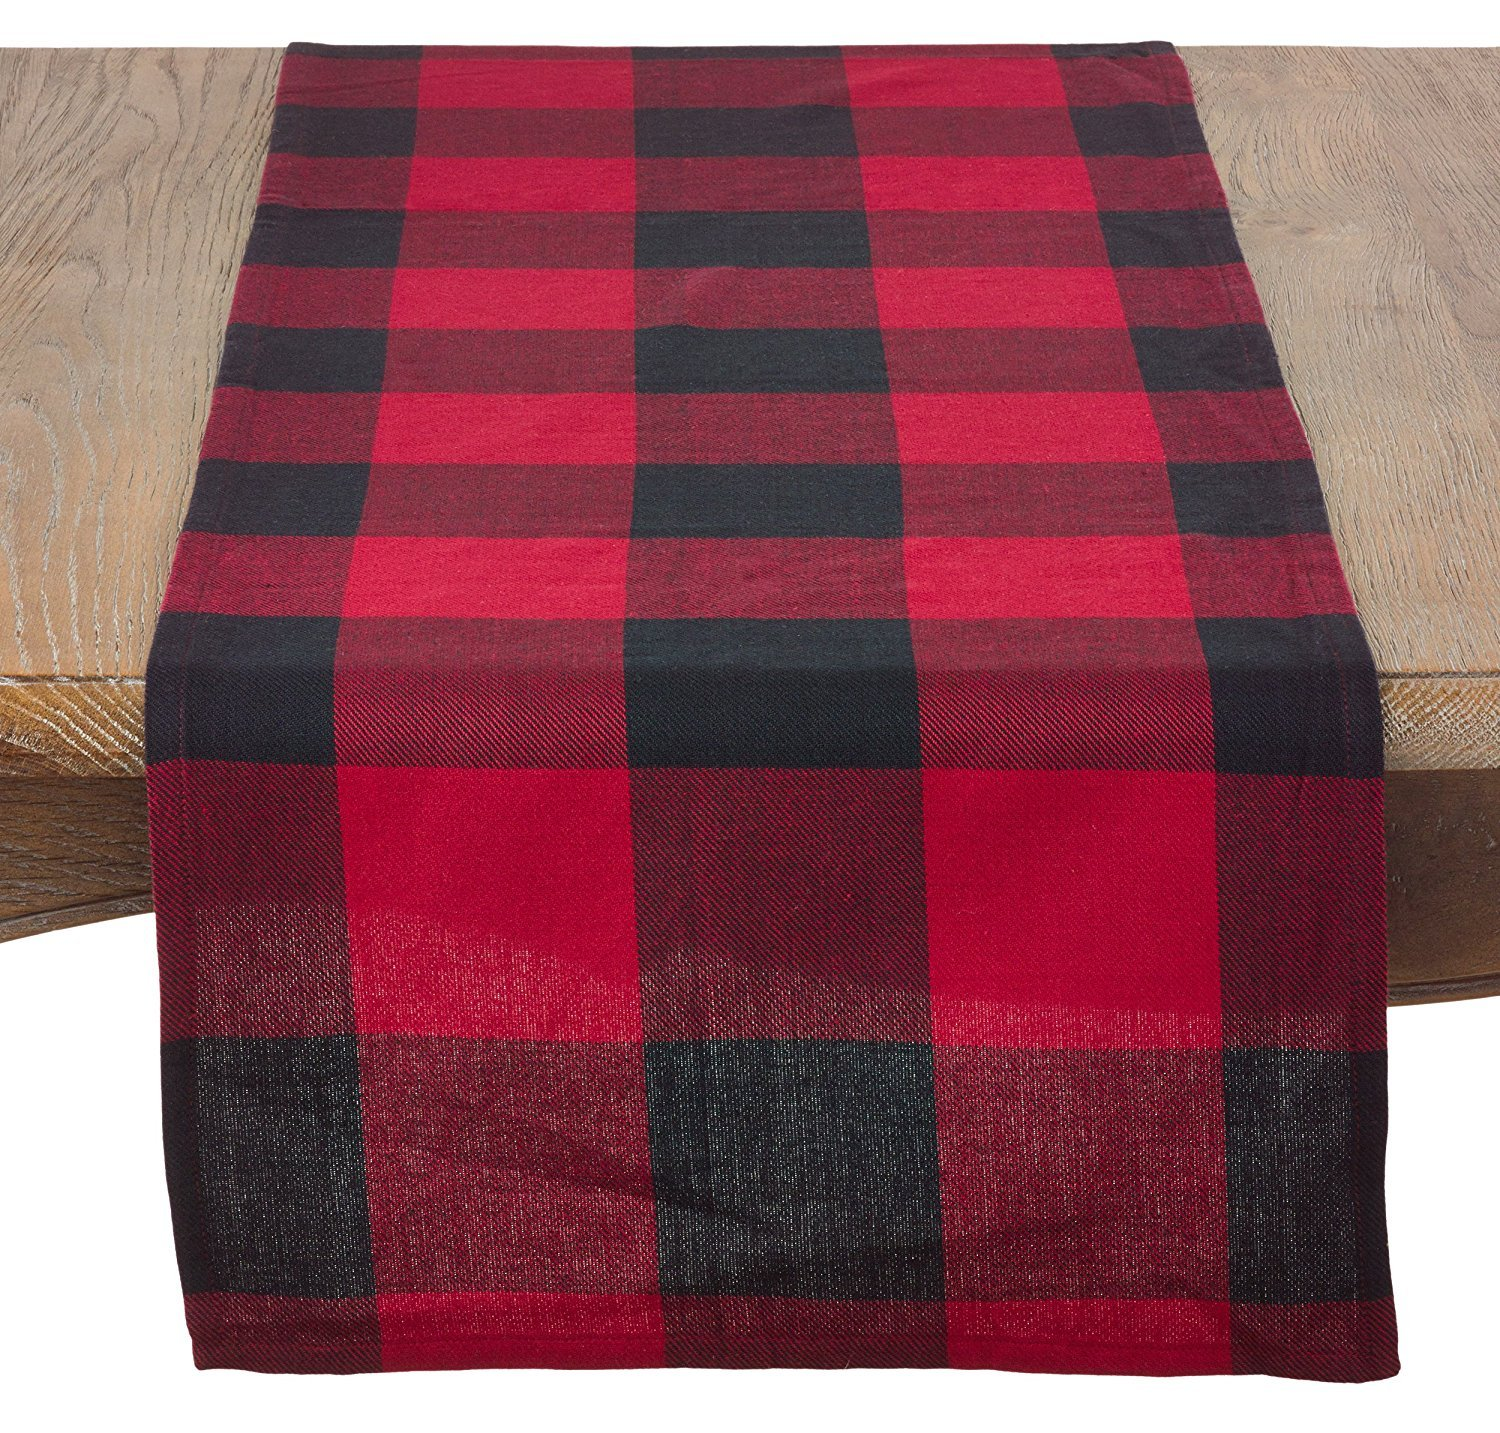 Fennco Styles Holiday Buffalo Check Plaid Design Cotton Table Runner (16''x120'' Table Runner, Red)